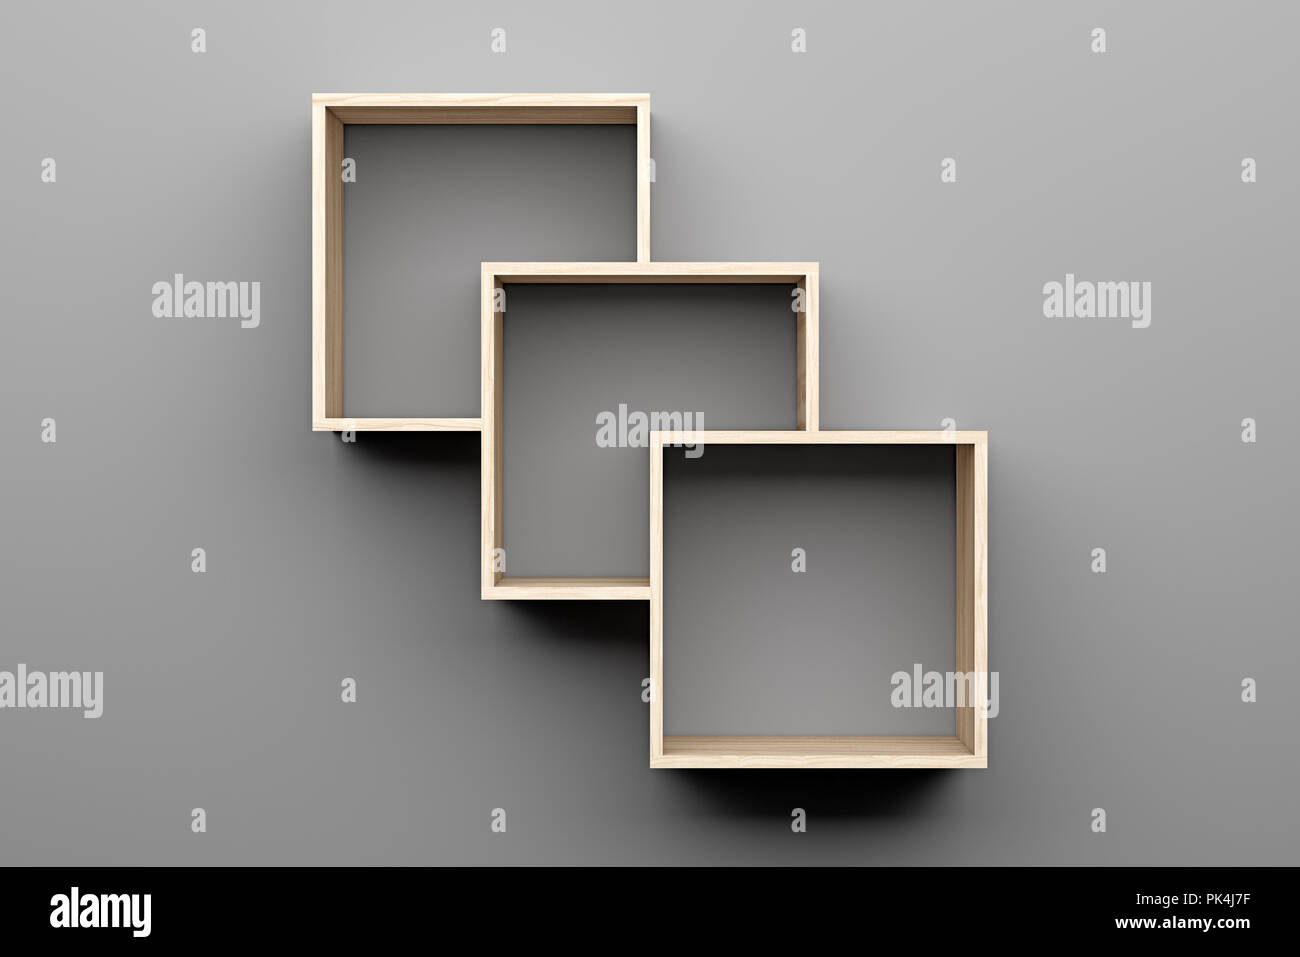 Empty Wooden Shelves On Gray Wall With Light From The Top